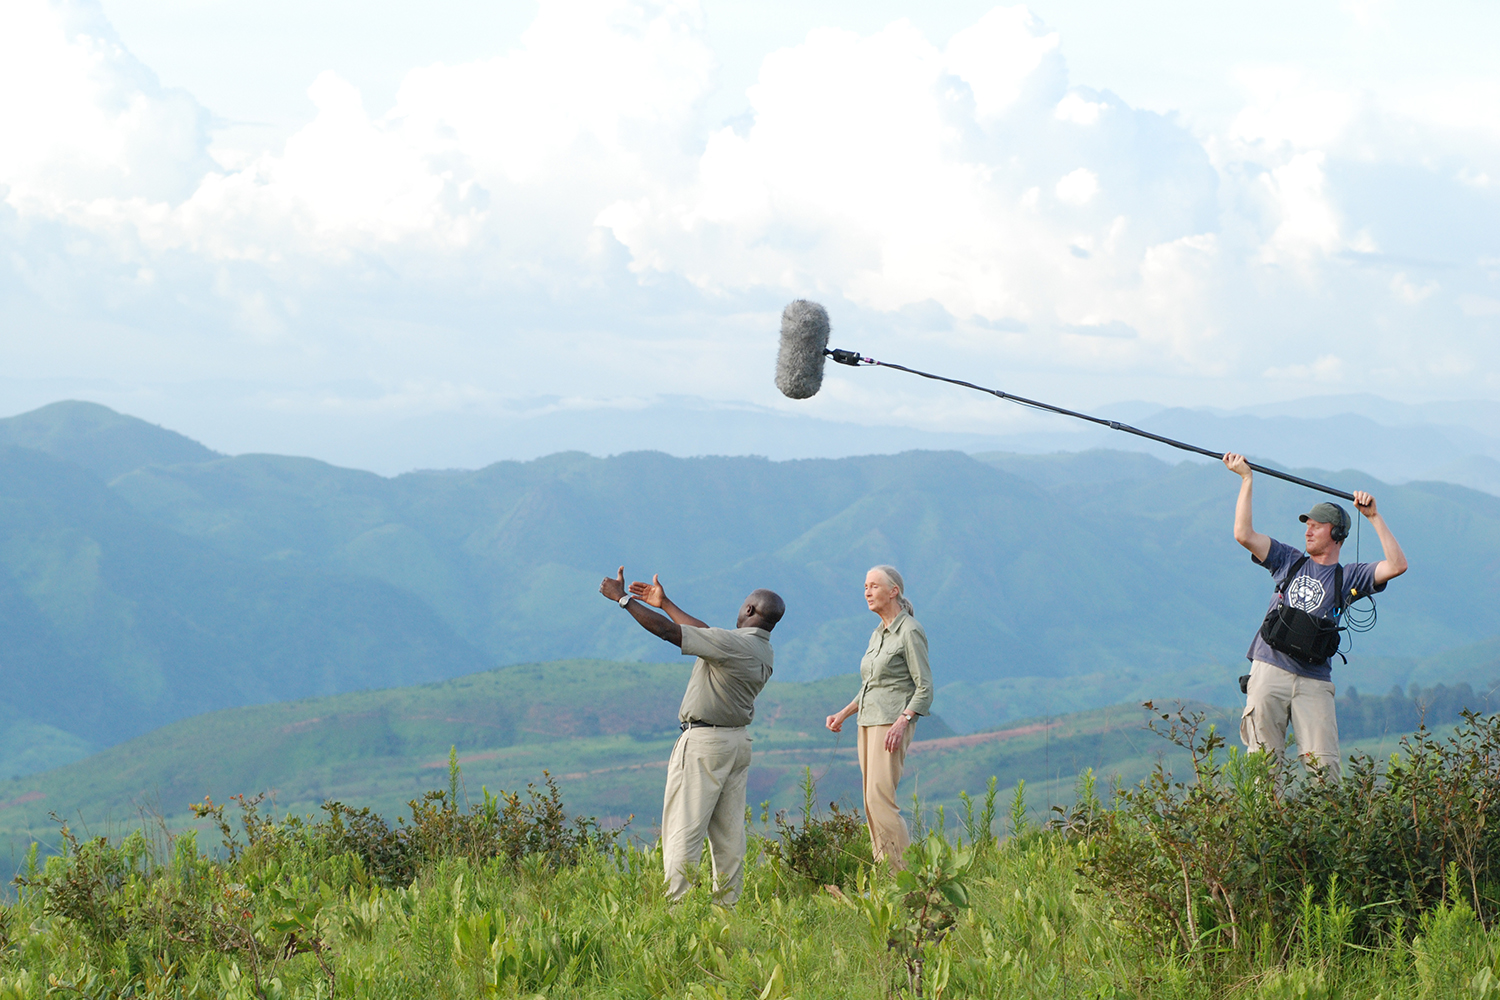 André Zacher recording Jane Goodall documentary Jane's Journey